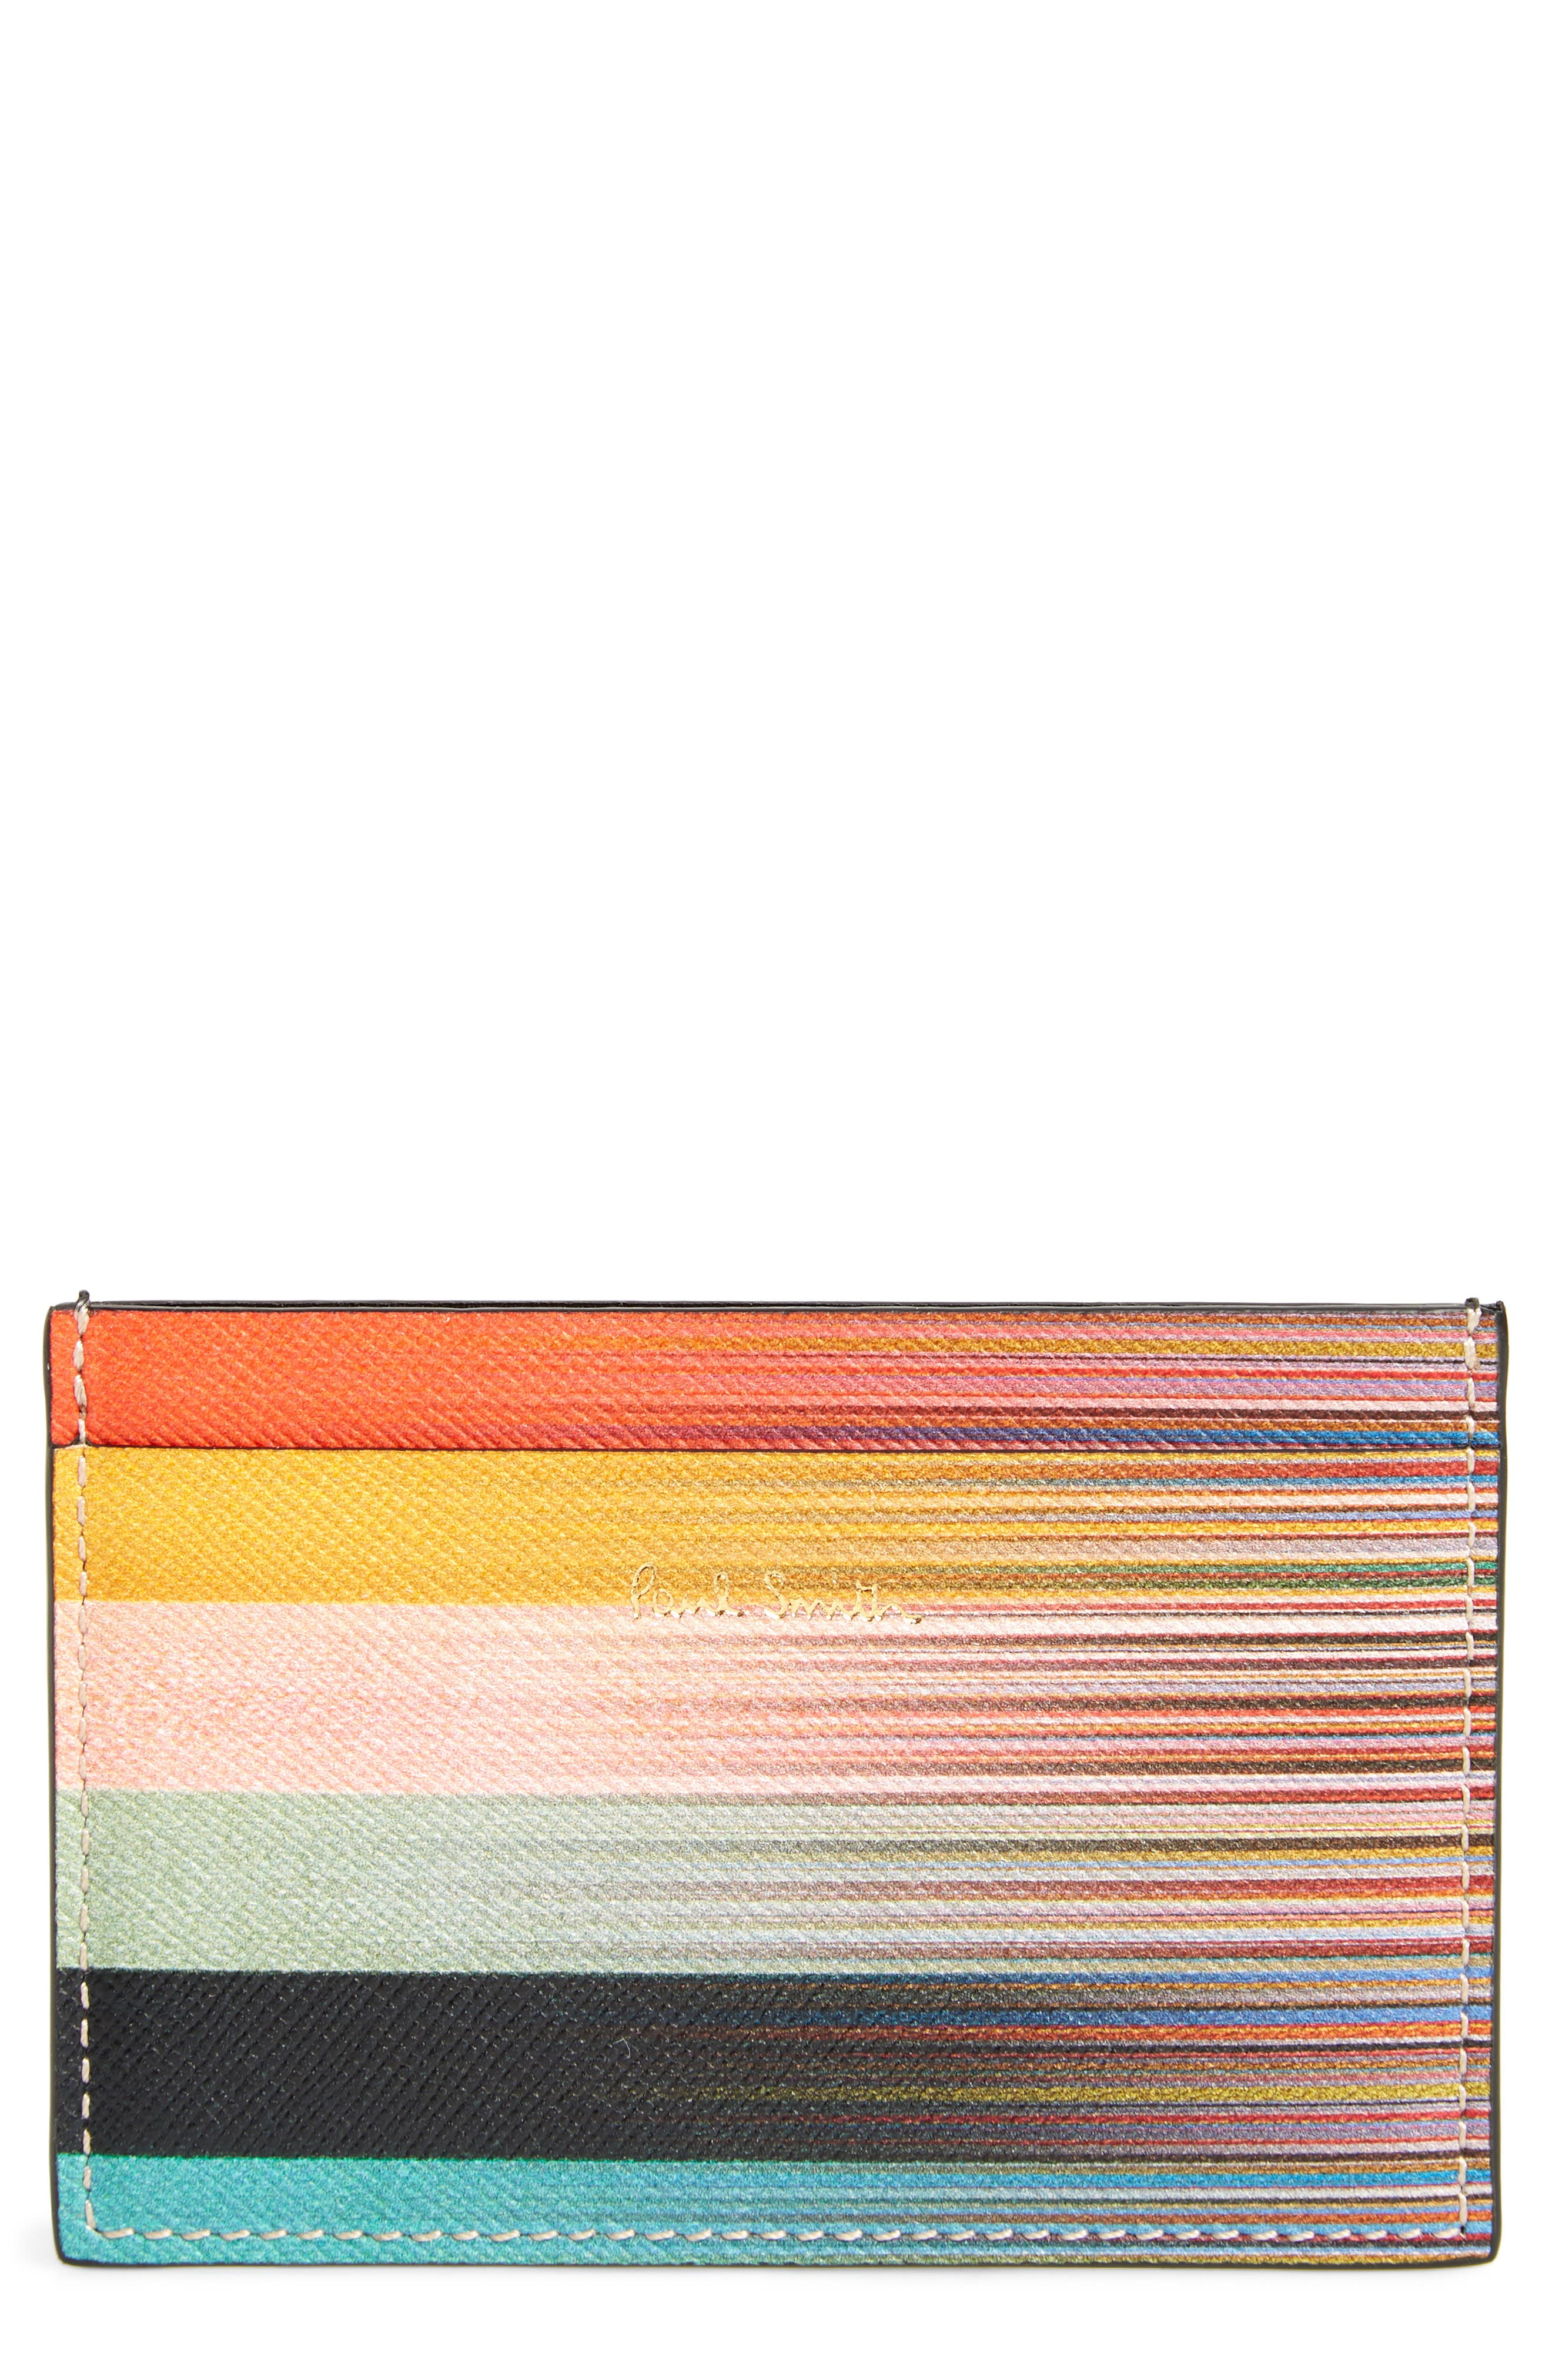 Paul Smith Artist Stripe Leather Card Case